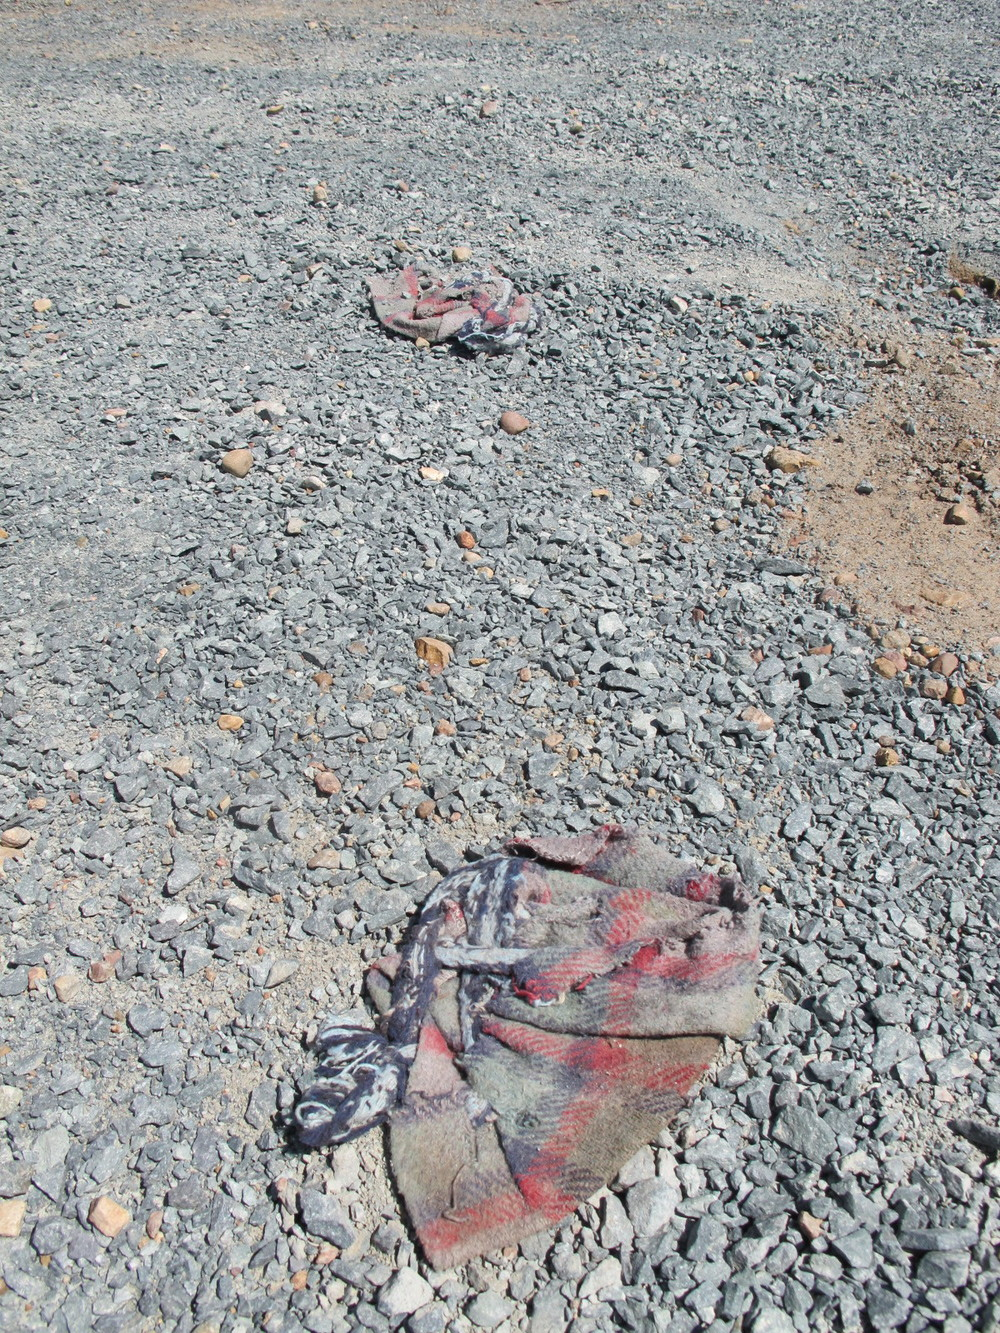 Fabric used as shoe covering by a border crosser in an attempt to avoid leaving footprints that could be tracked by border agents | Photo by Jena Lee